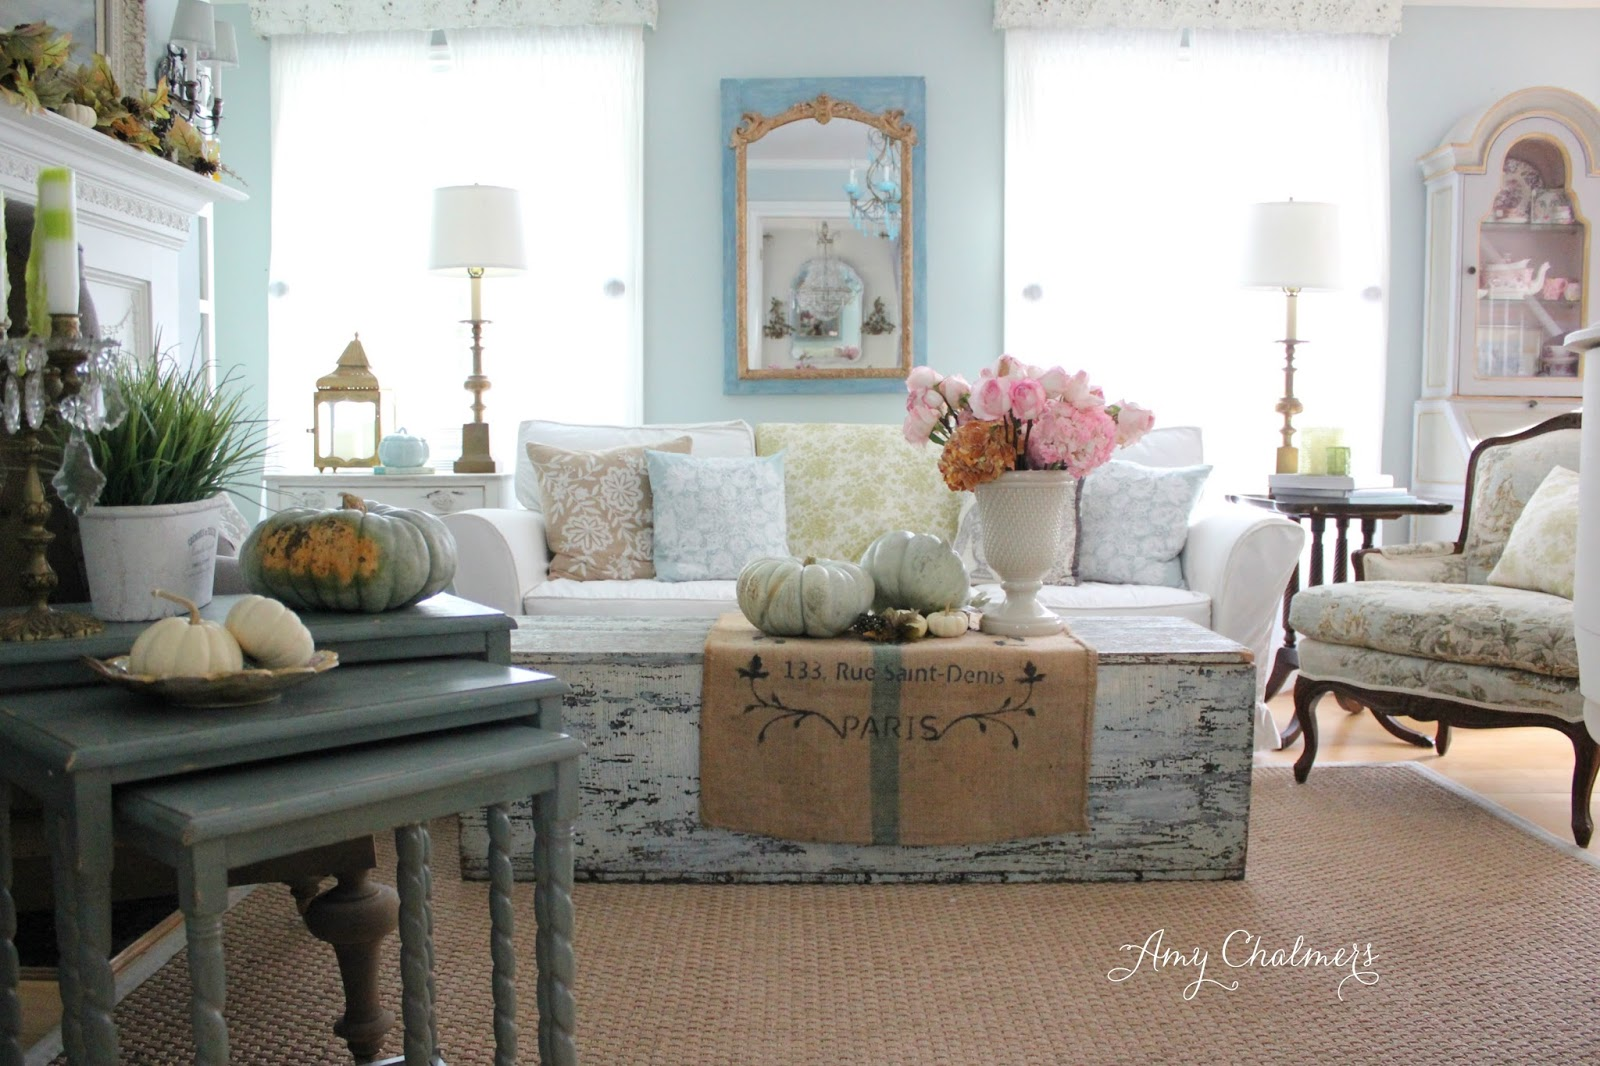 Decor Maison Maison Decor A Fall French Country Home Tour With Soft Surroundings